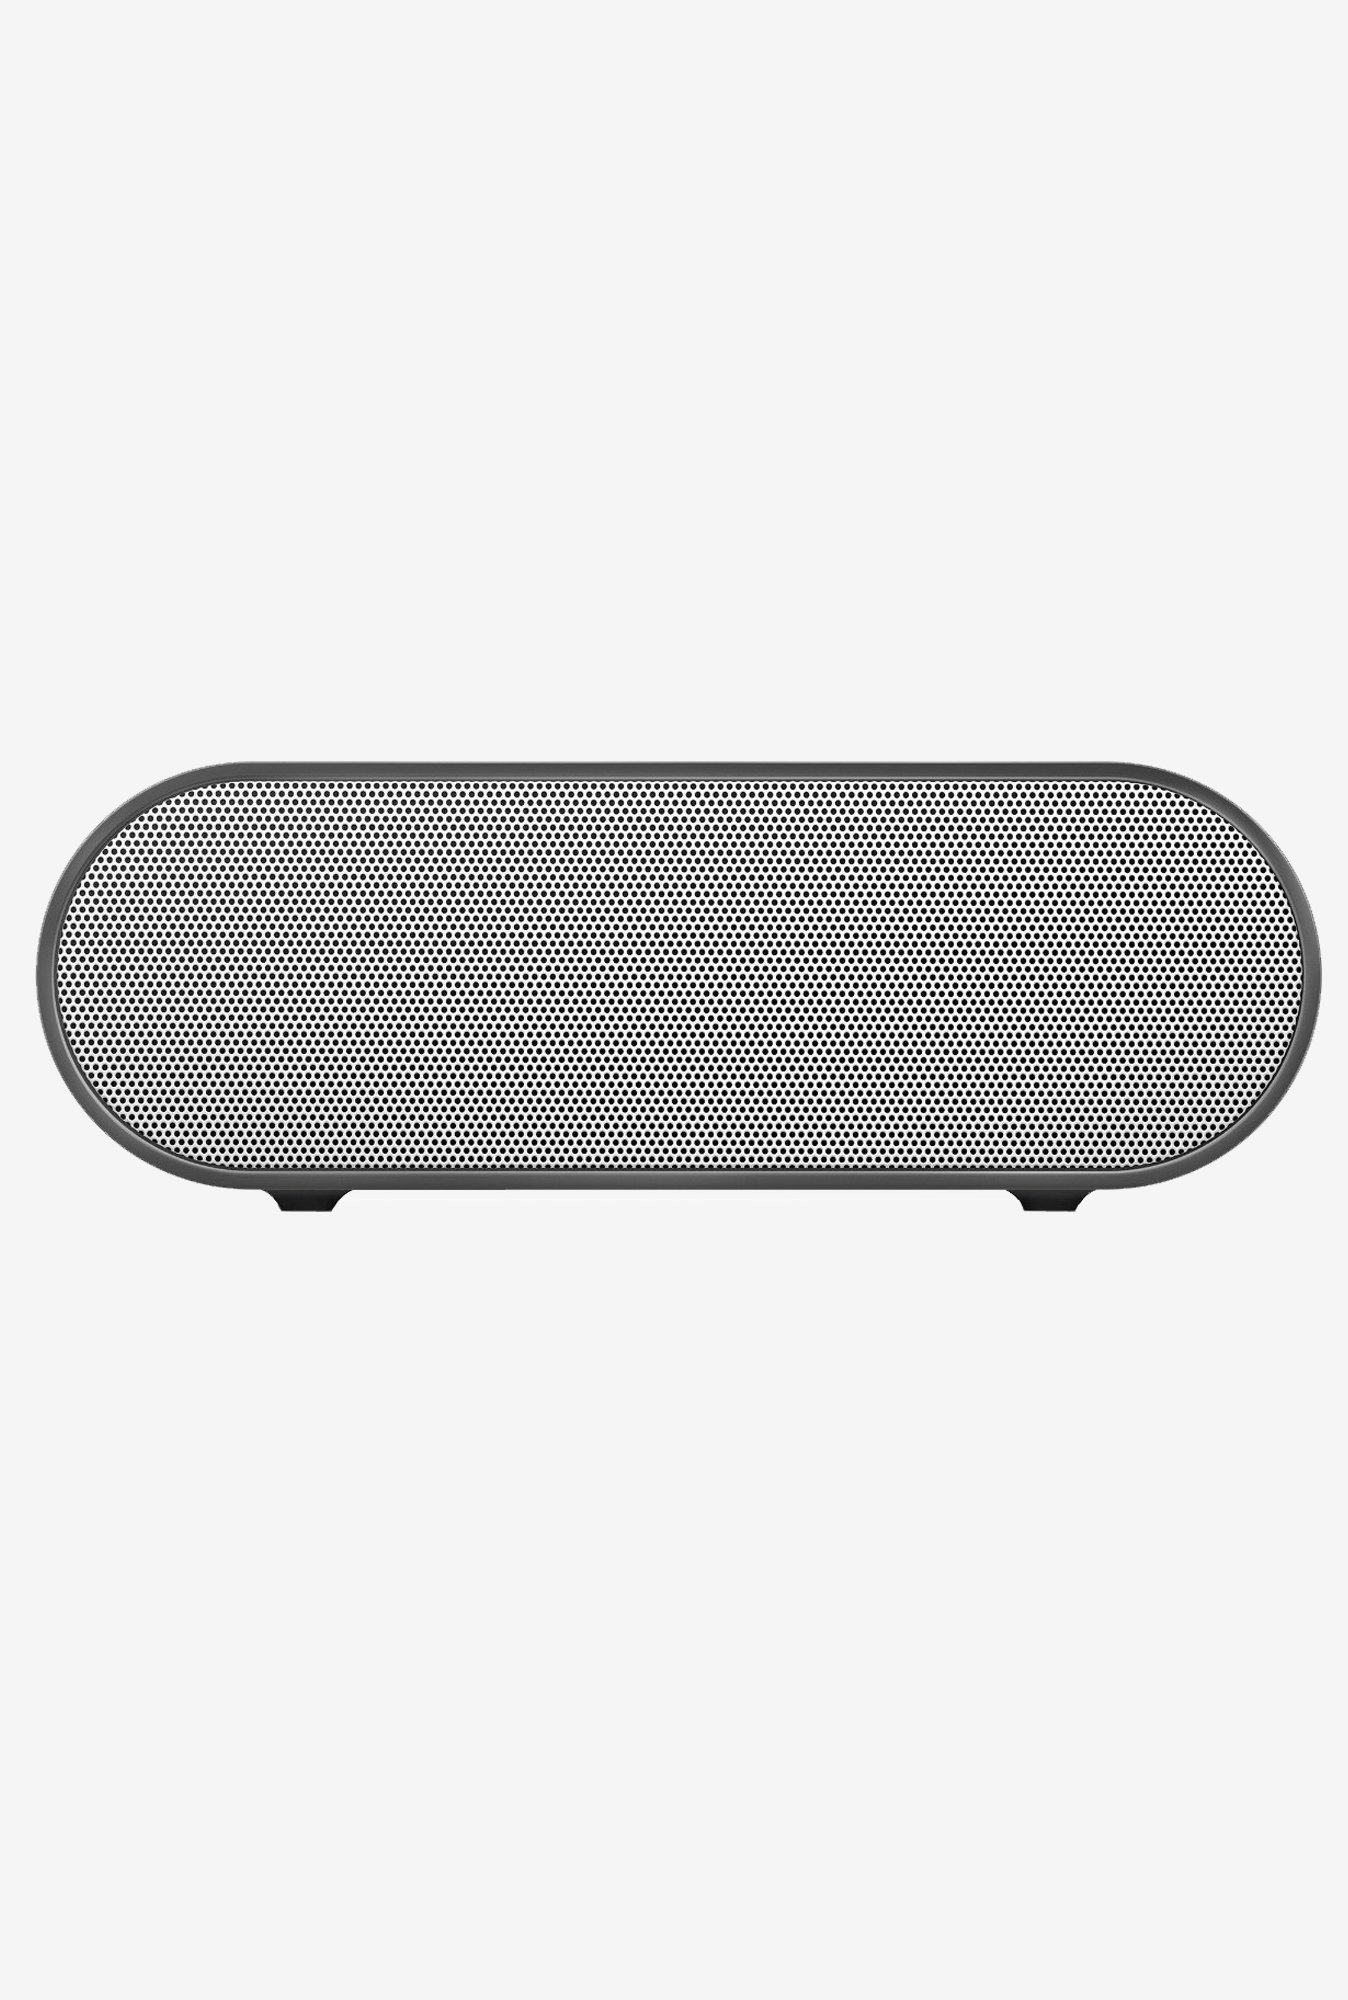 Sony PUMPX (SRS-X2) Wireless Bluetooth Speaker (White)